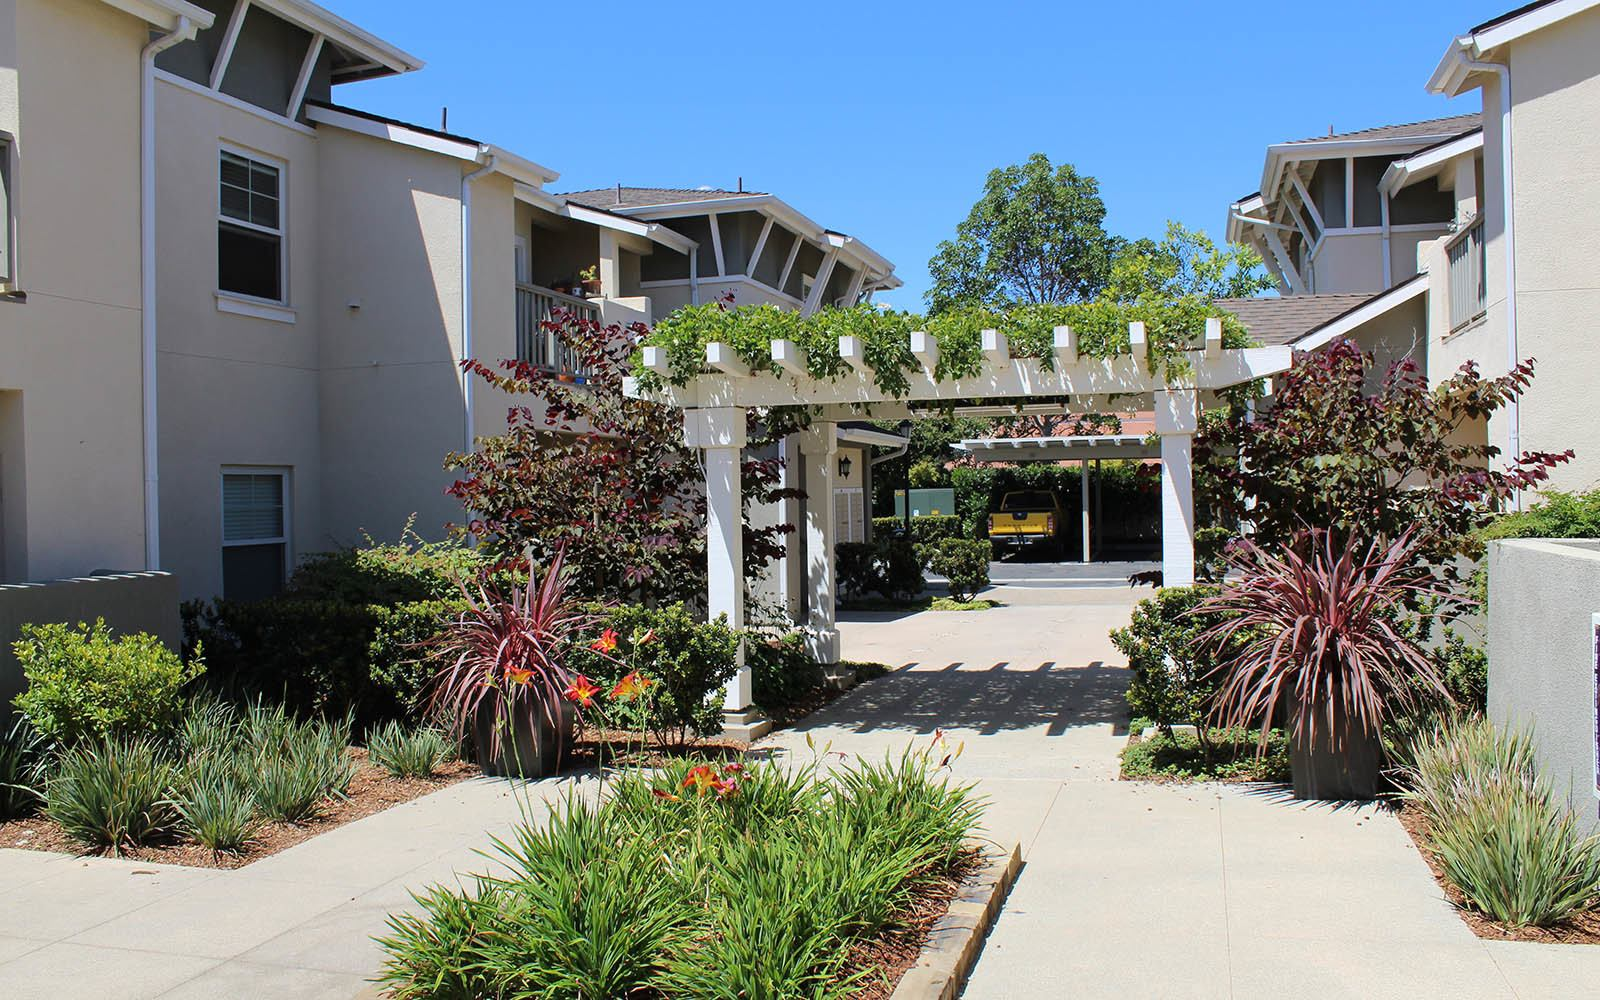 Landscaping Ralston Courtyard Apartments in Ventura